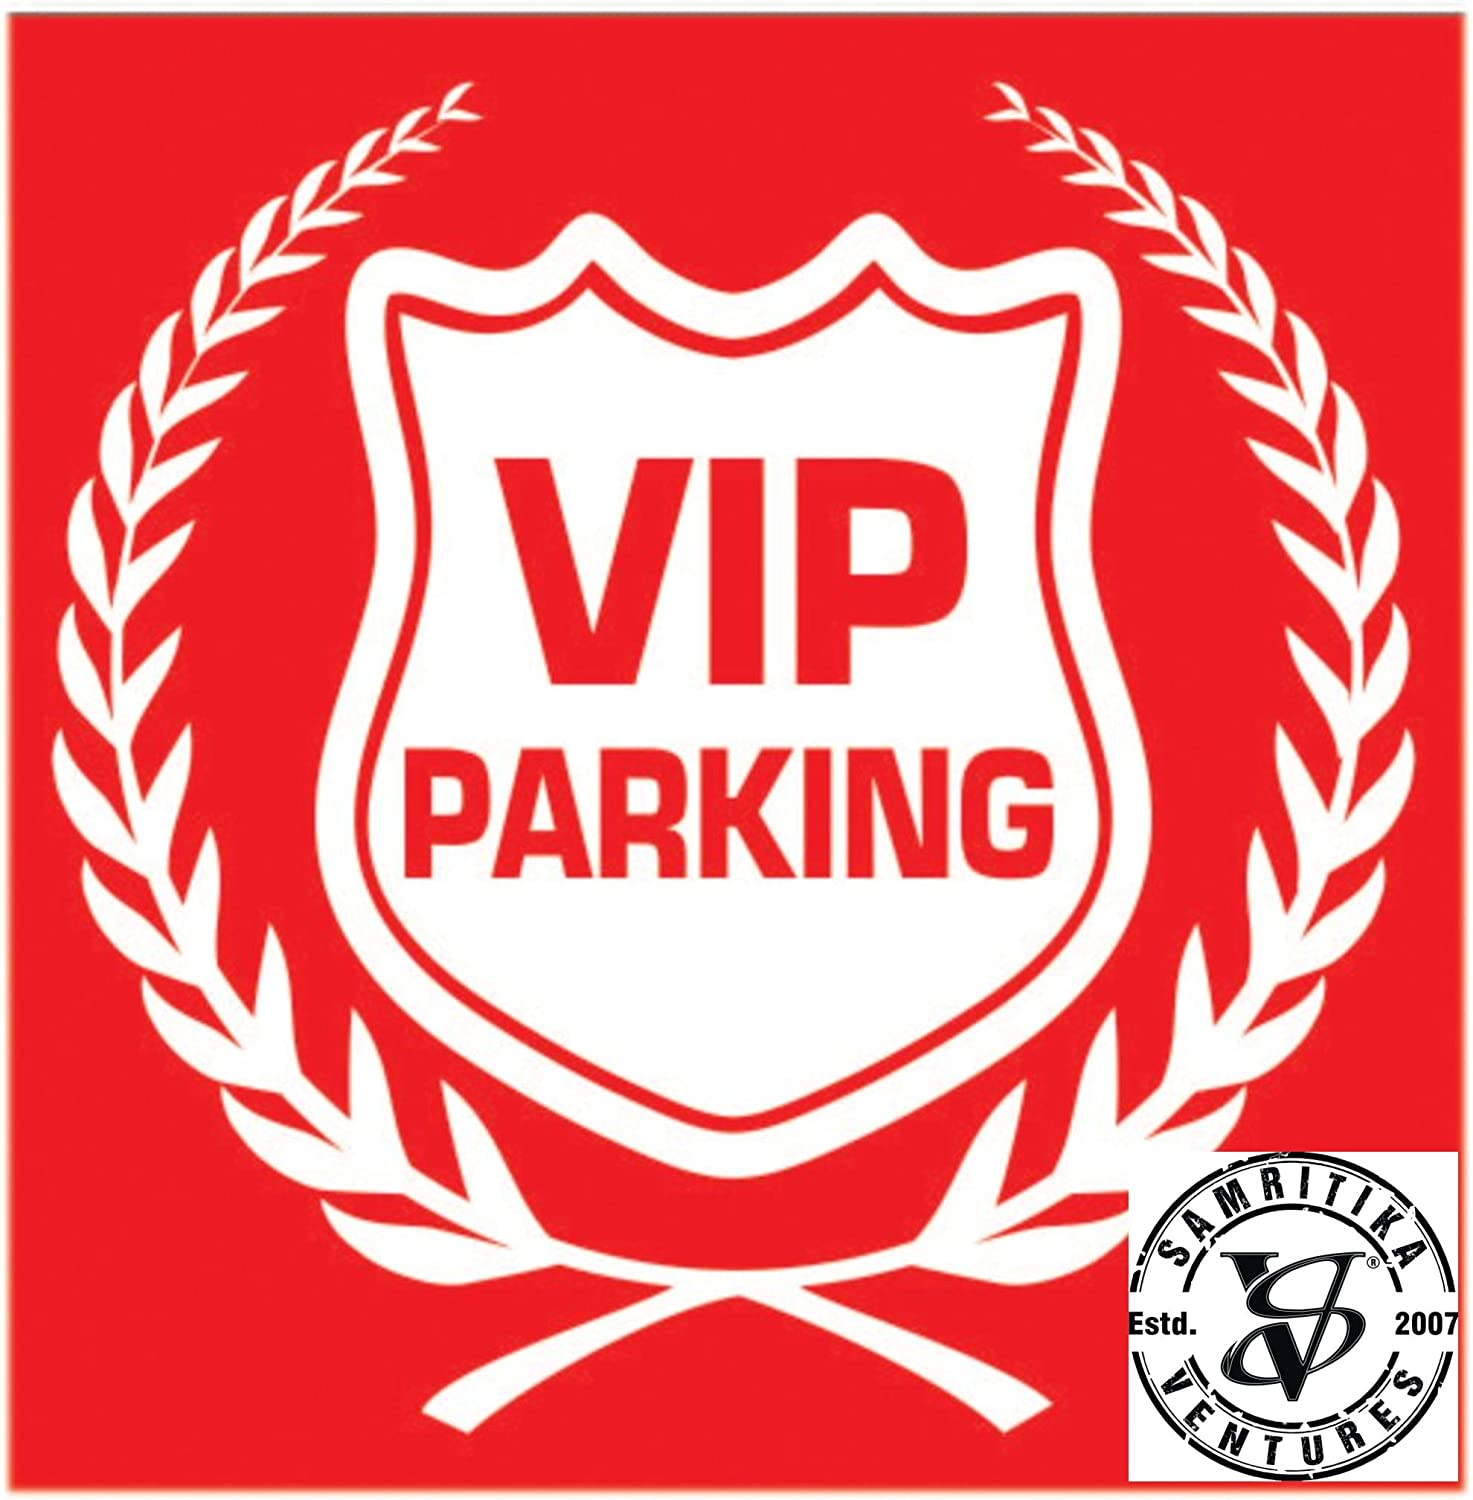 Car parking stickers design india - Vip Parking In Blue Red Car Safety Decal Sticker Decor Sign